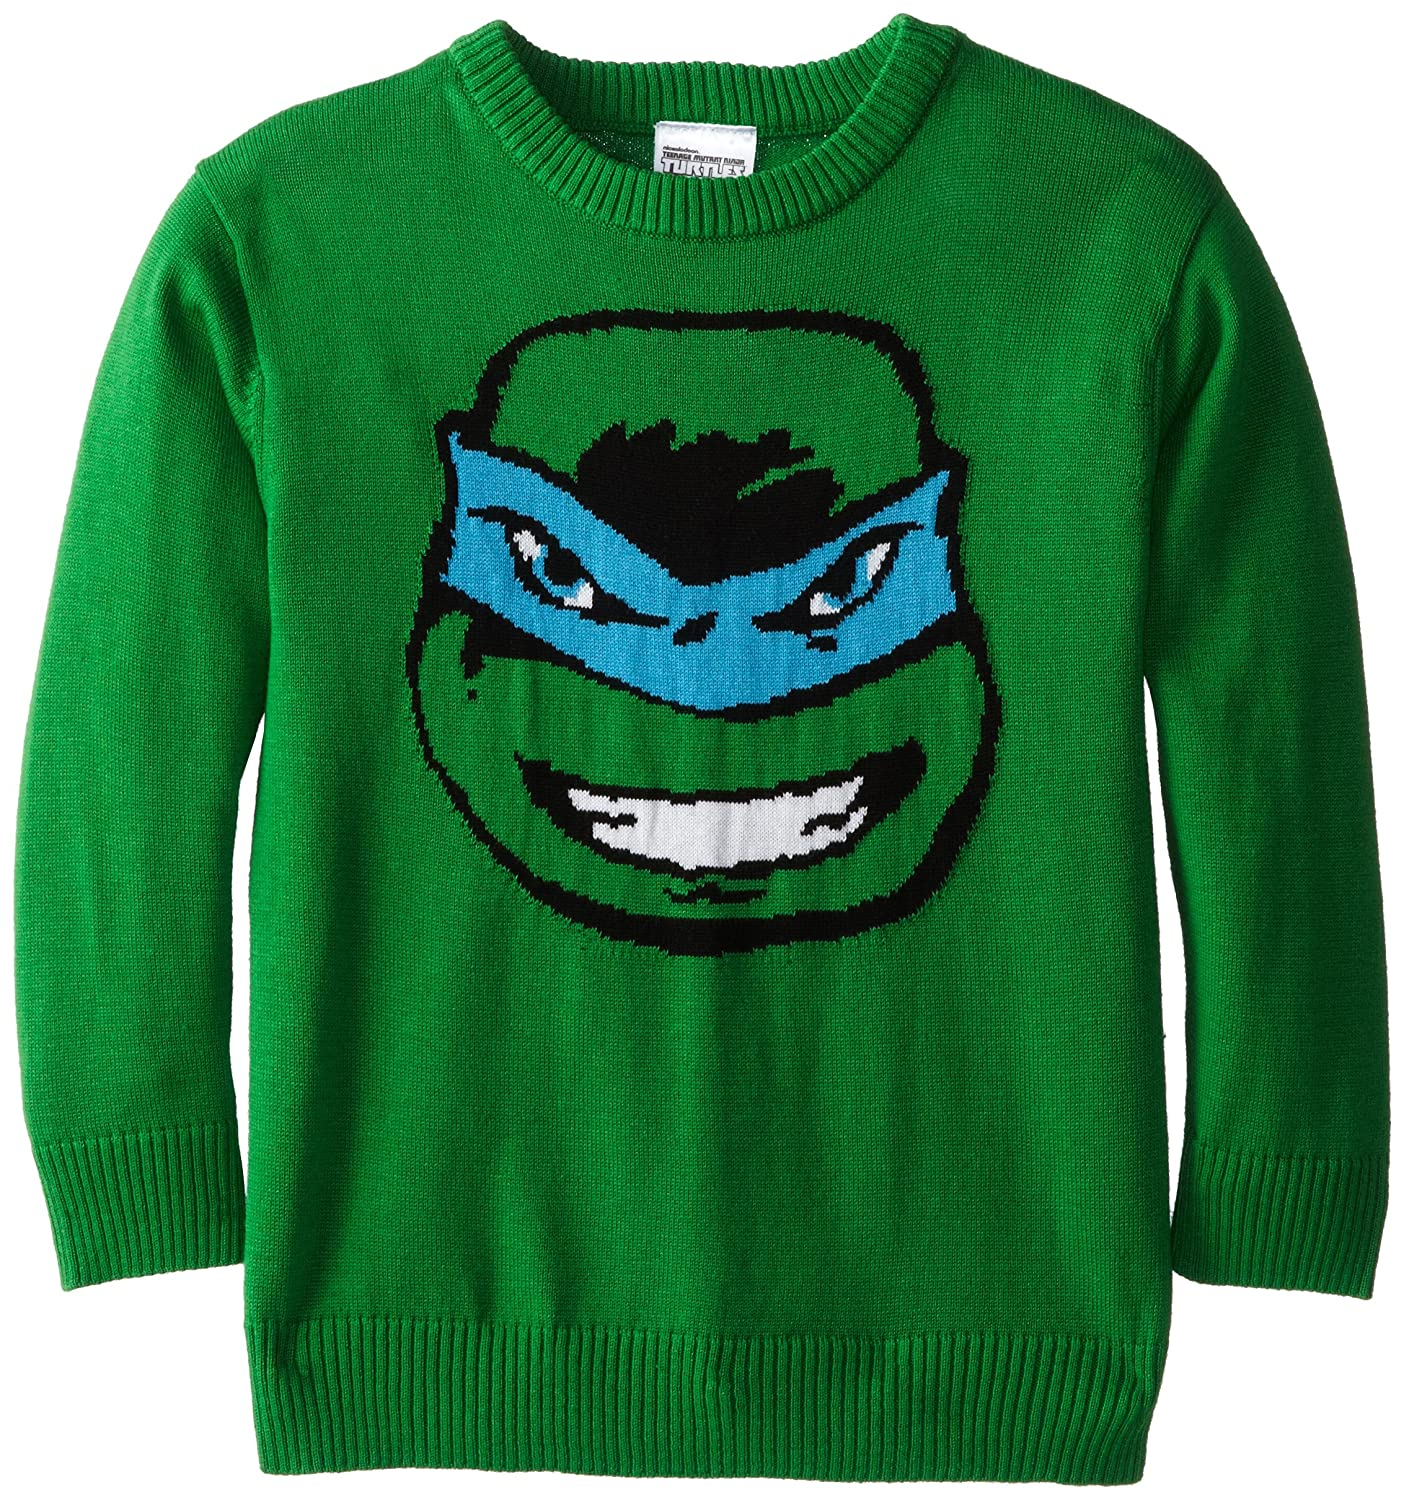 Teenage Mutant Ninja Turtles Boys' TMNT Leonardo Intarsia Sweater Freeze Children's Apparel NJSB972-3B39